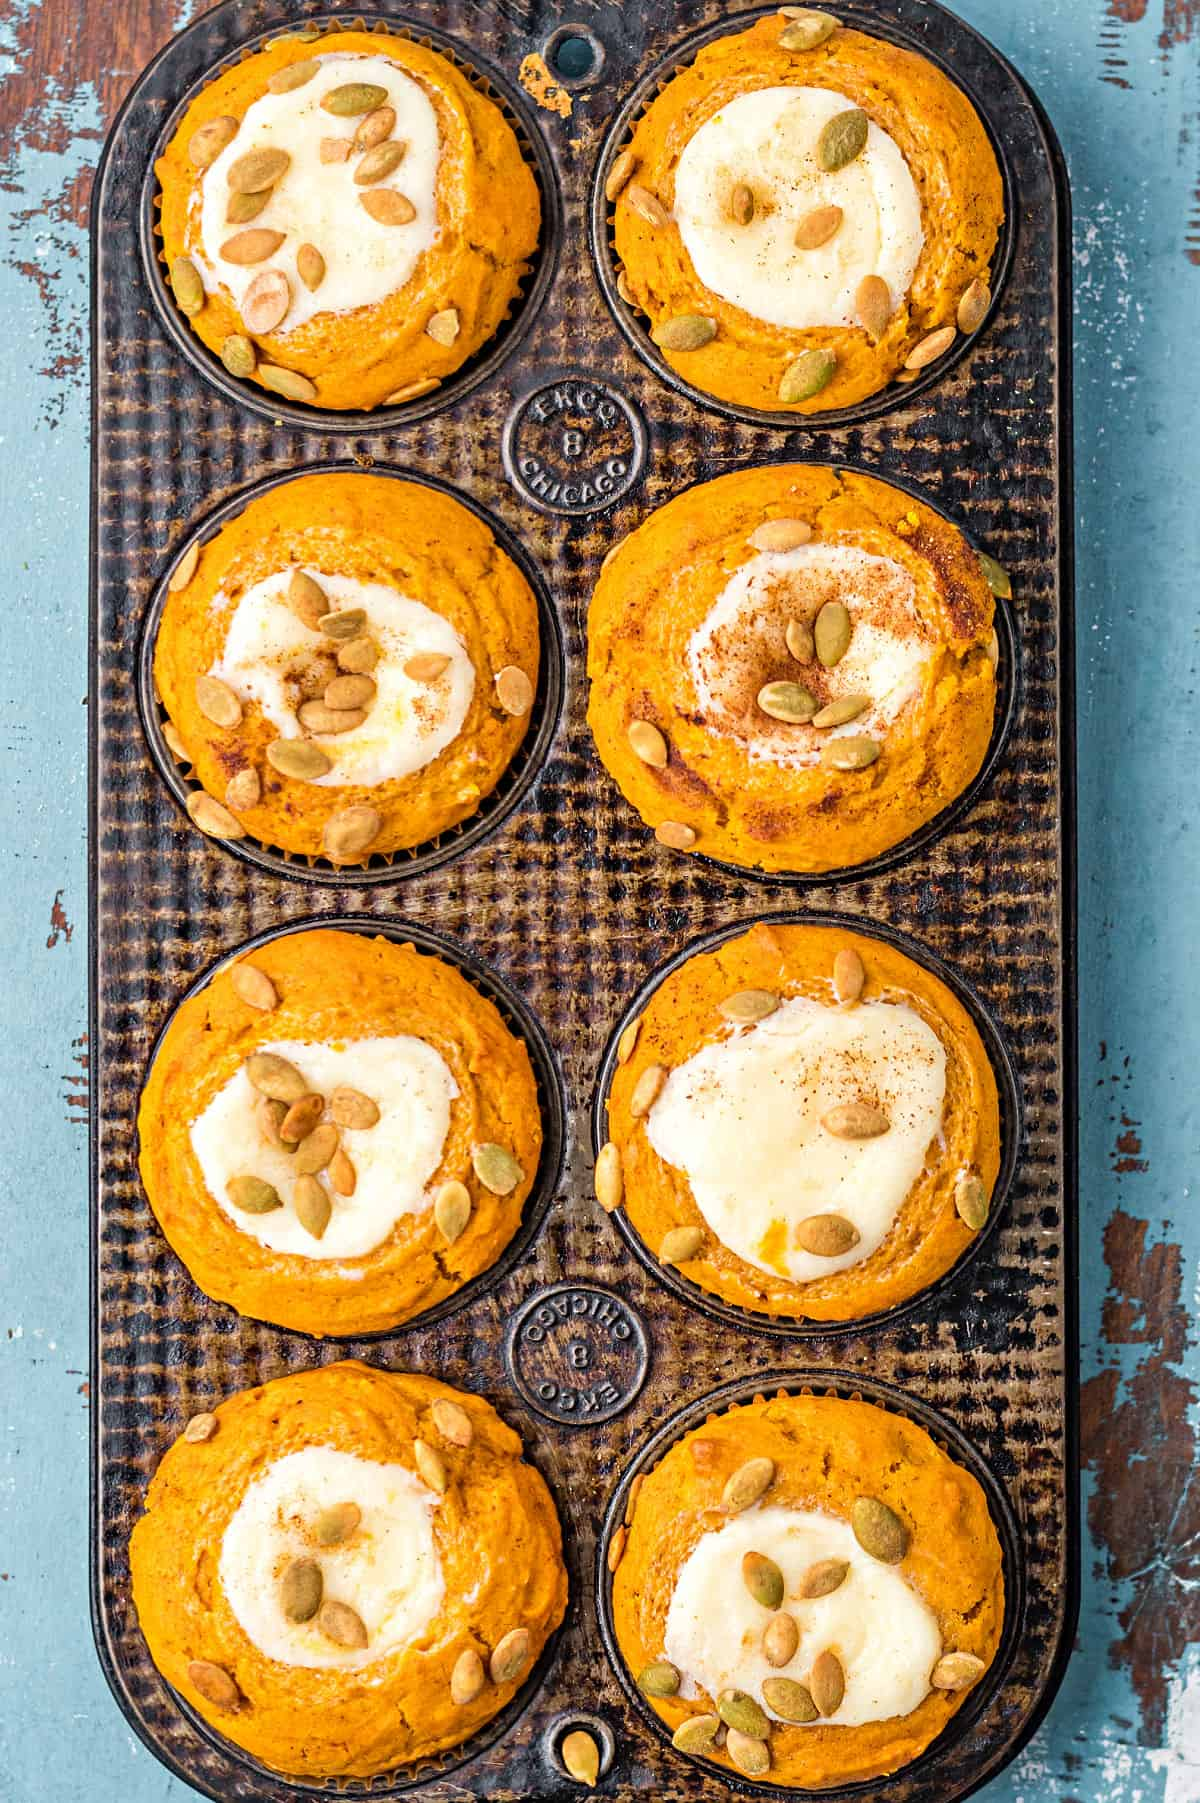 Pumpkin muffins with cream cheese centers and spiced pepitas on top.